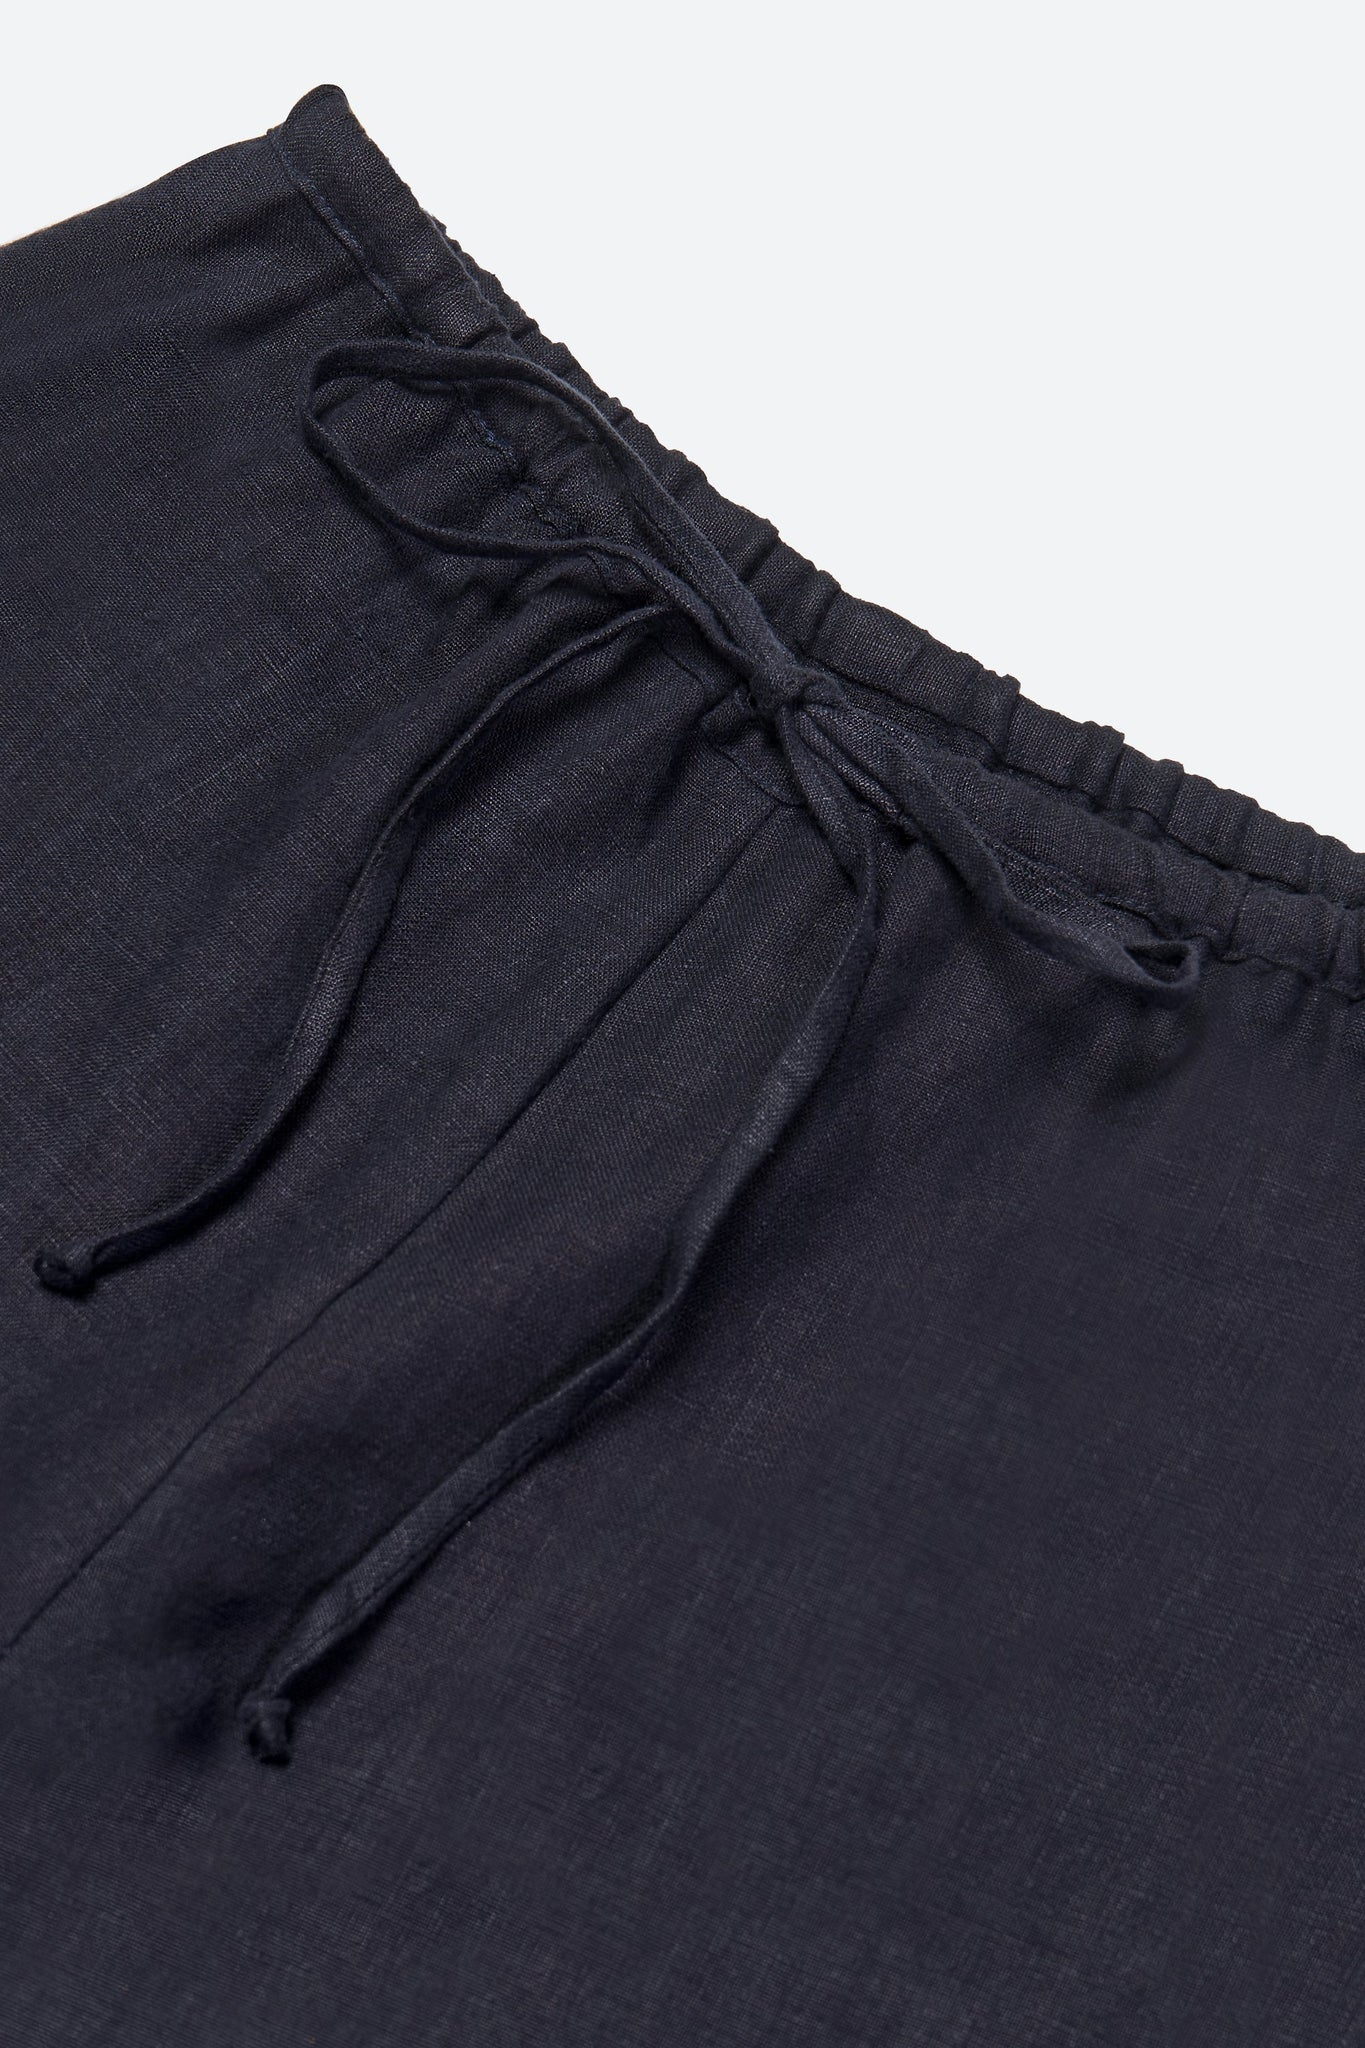 Linen and silk pants, dark blue